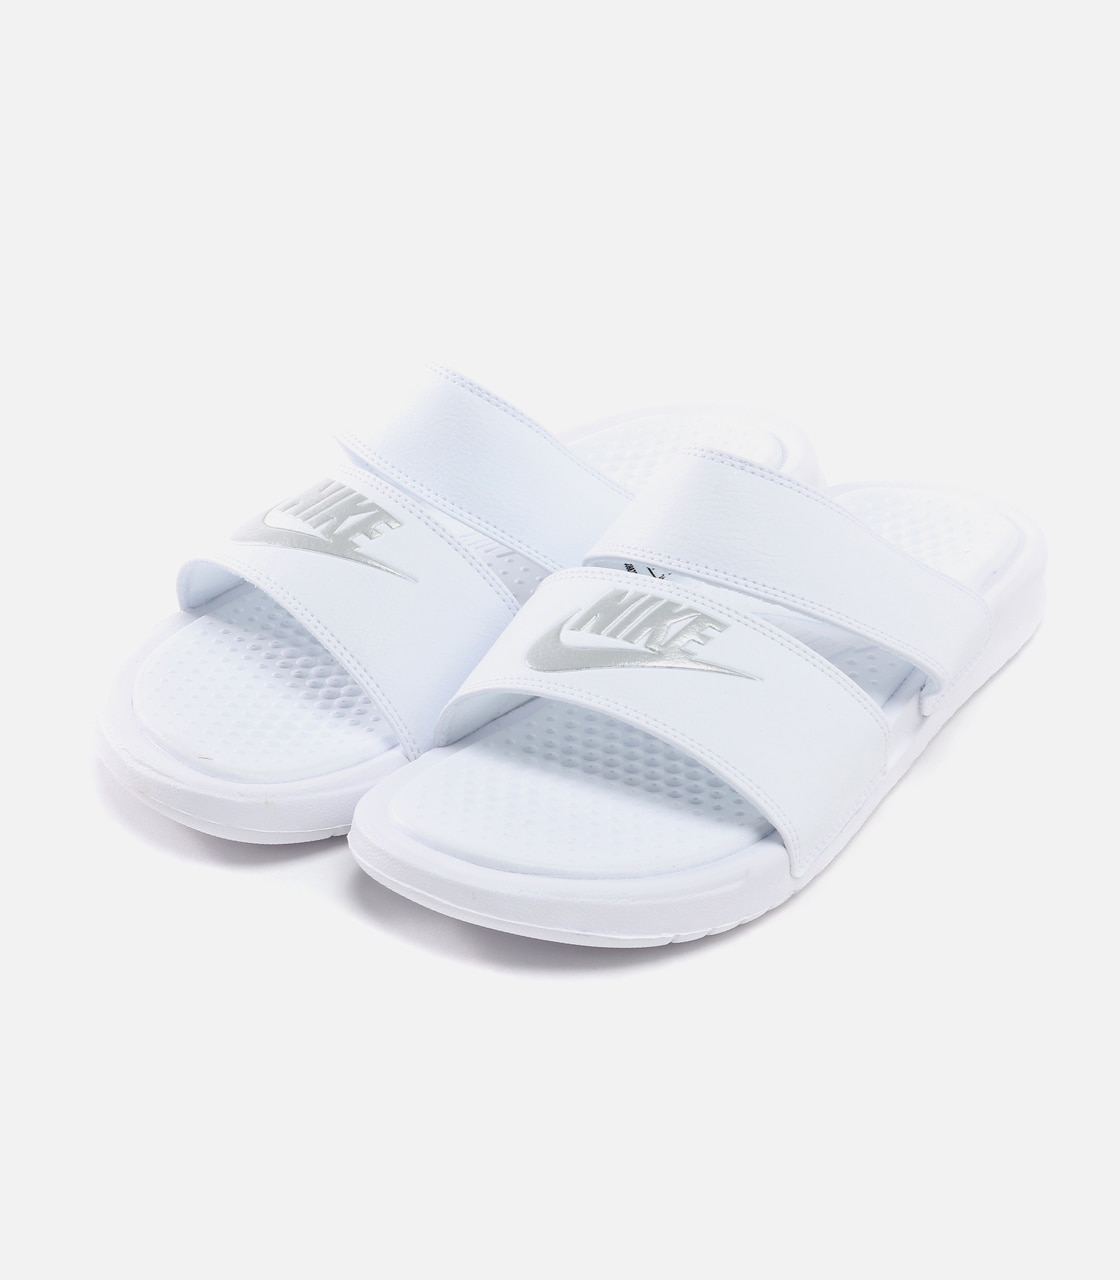 【AZUL BY MOUSSY】WIMNS NIKE BENASSI DUO ULTRA SLIDE 詳細画像 WHT 1